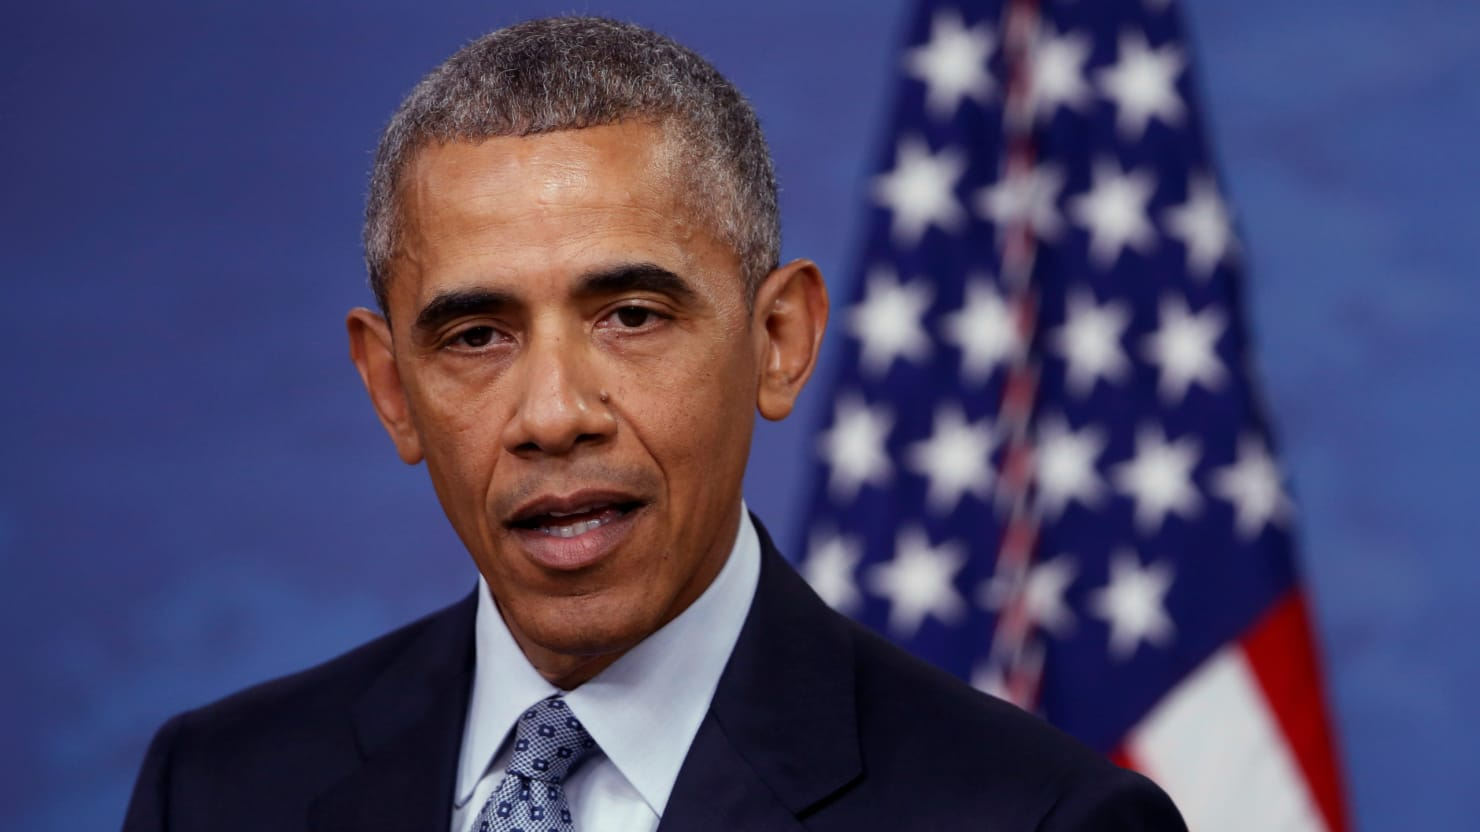 how does obama make his 2008 The 44th president of the united states, author and the most popular person in the world, barack hussein obama ii, has an estimated net worth of $40 million, excluding the $14 million in nobel prize money he donated to charity and his primary home.